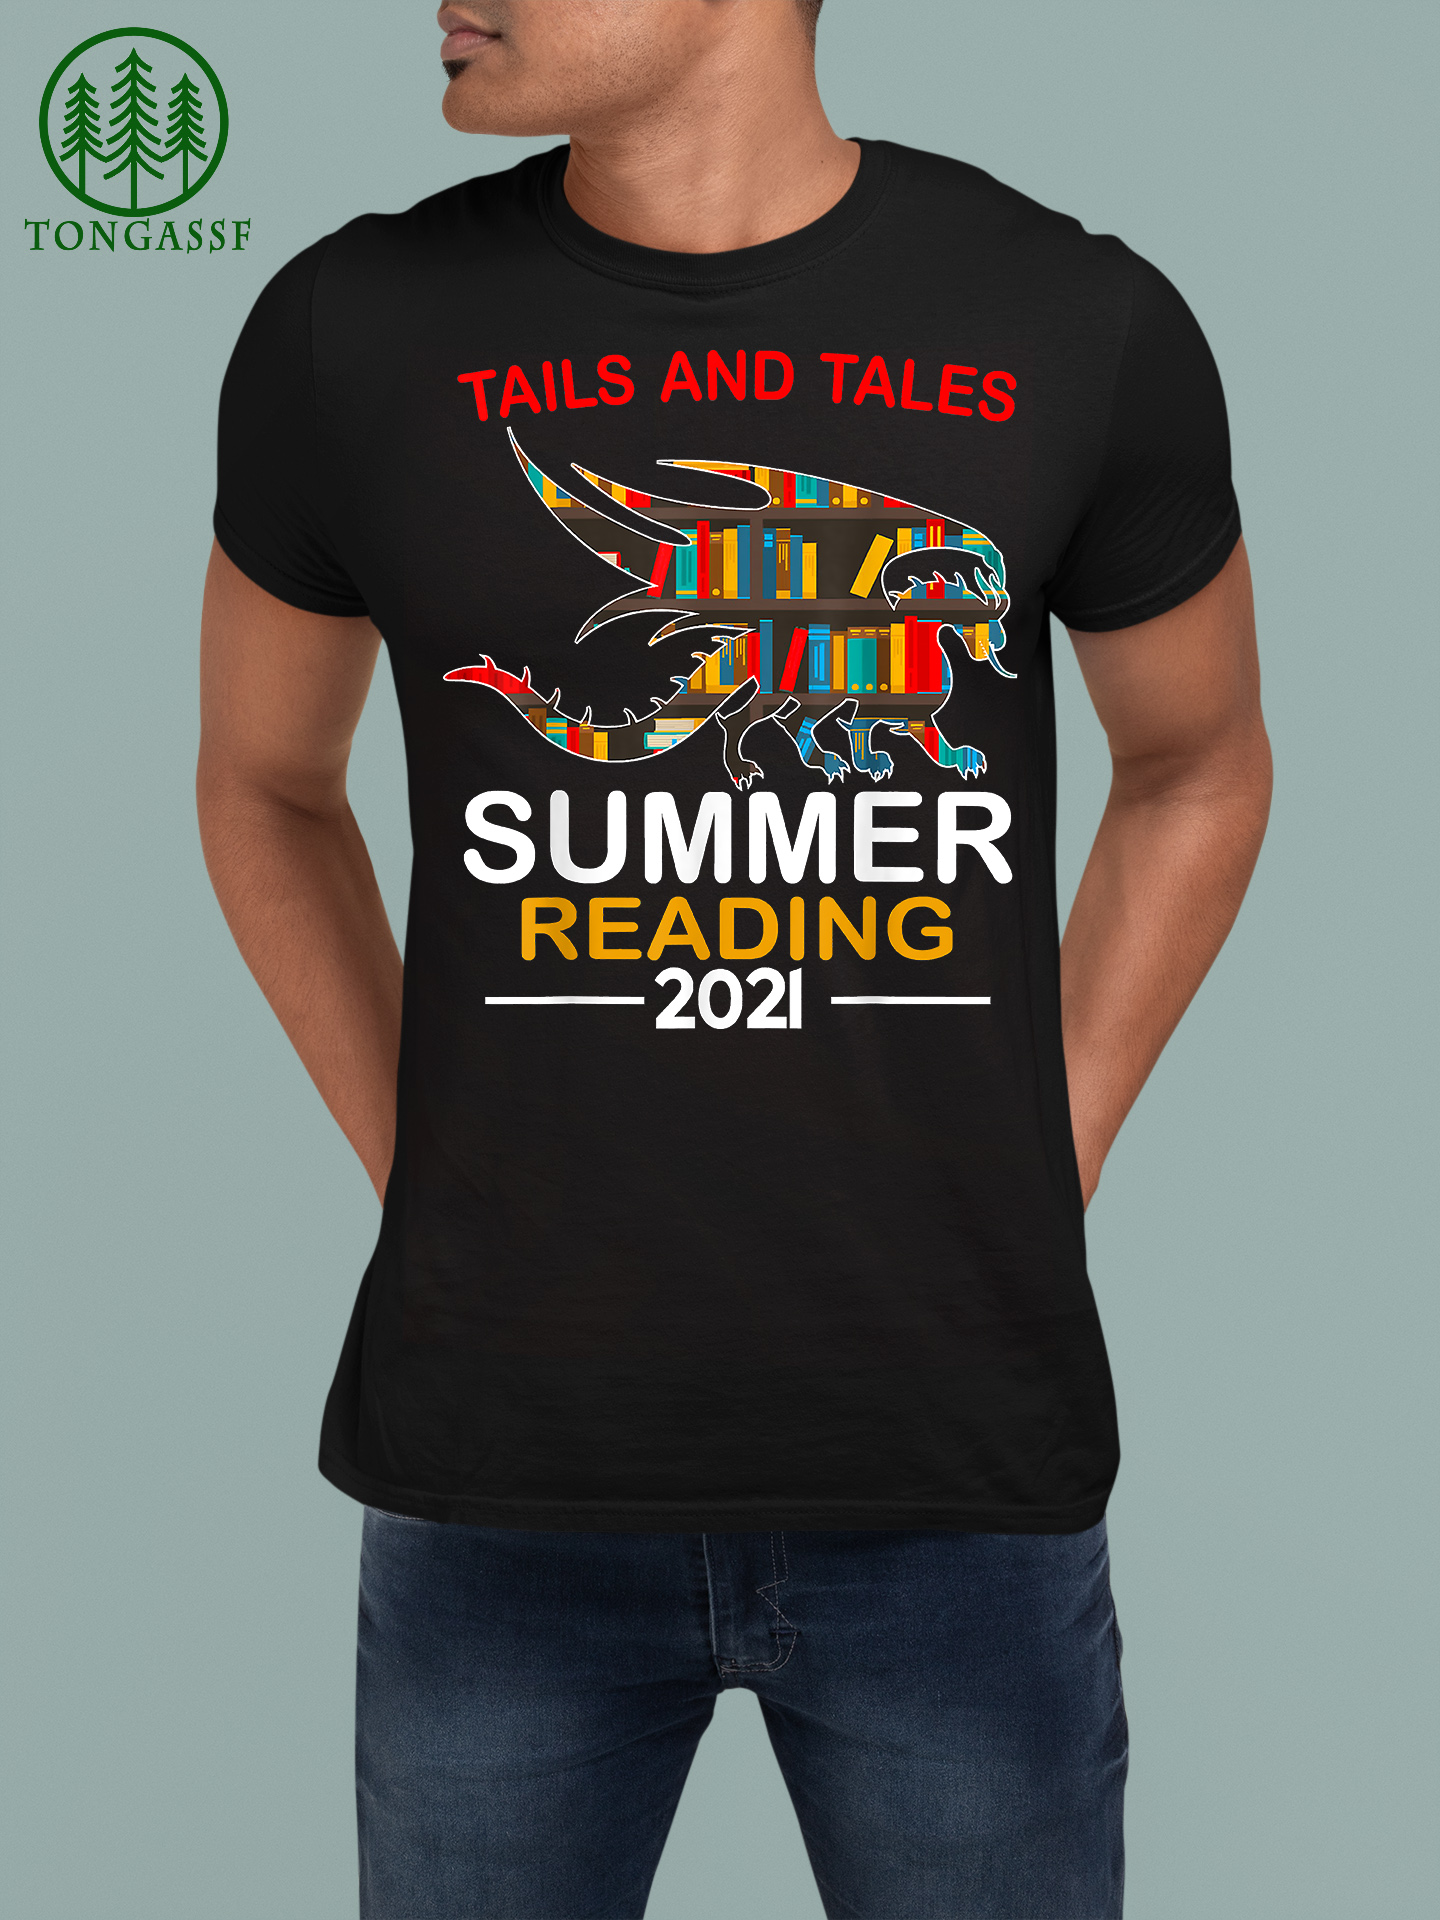 Tails and Tales Summer Reading 2021 Book Reading Teen Dragon T Shirt